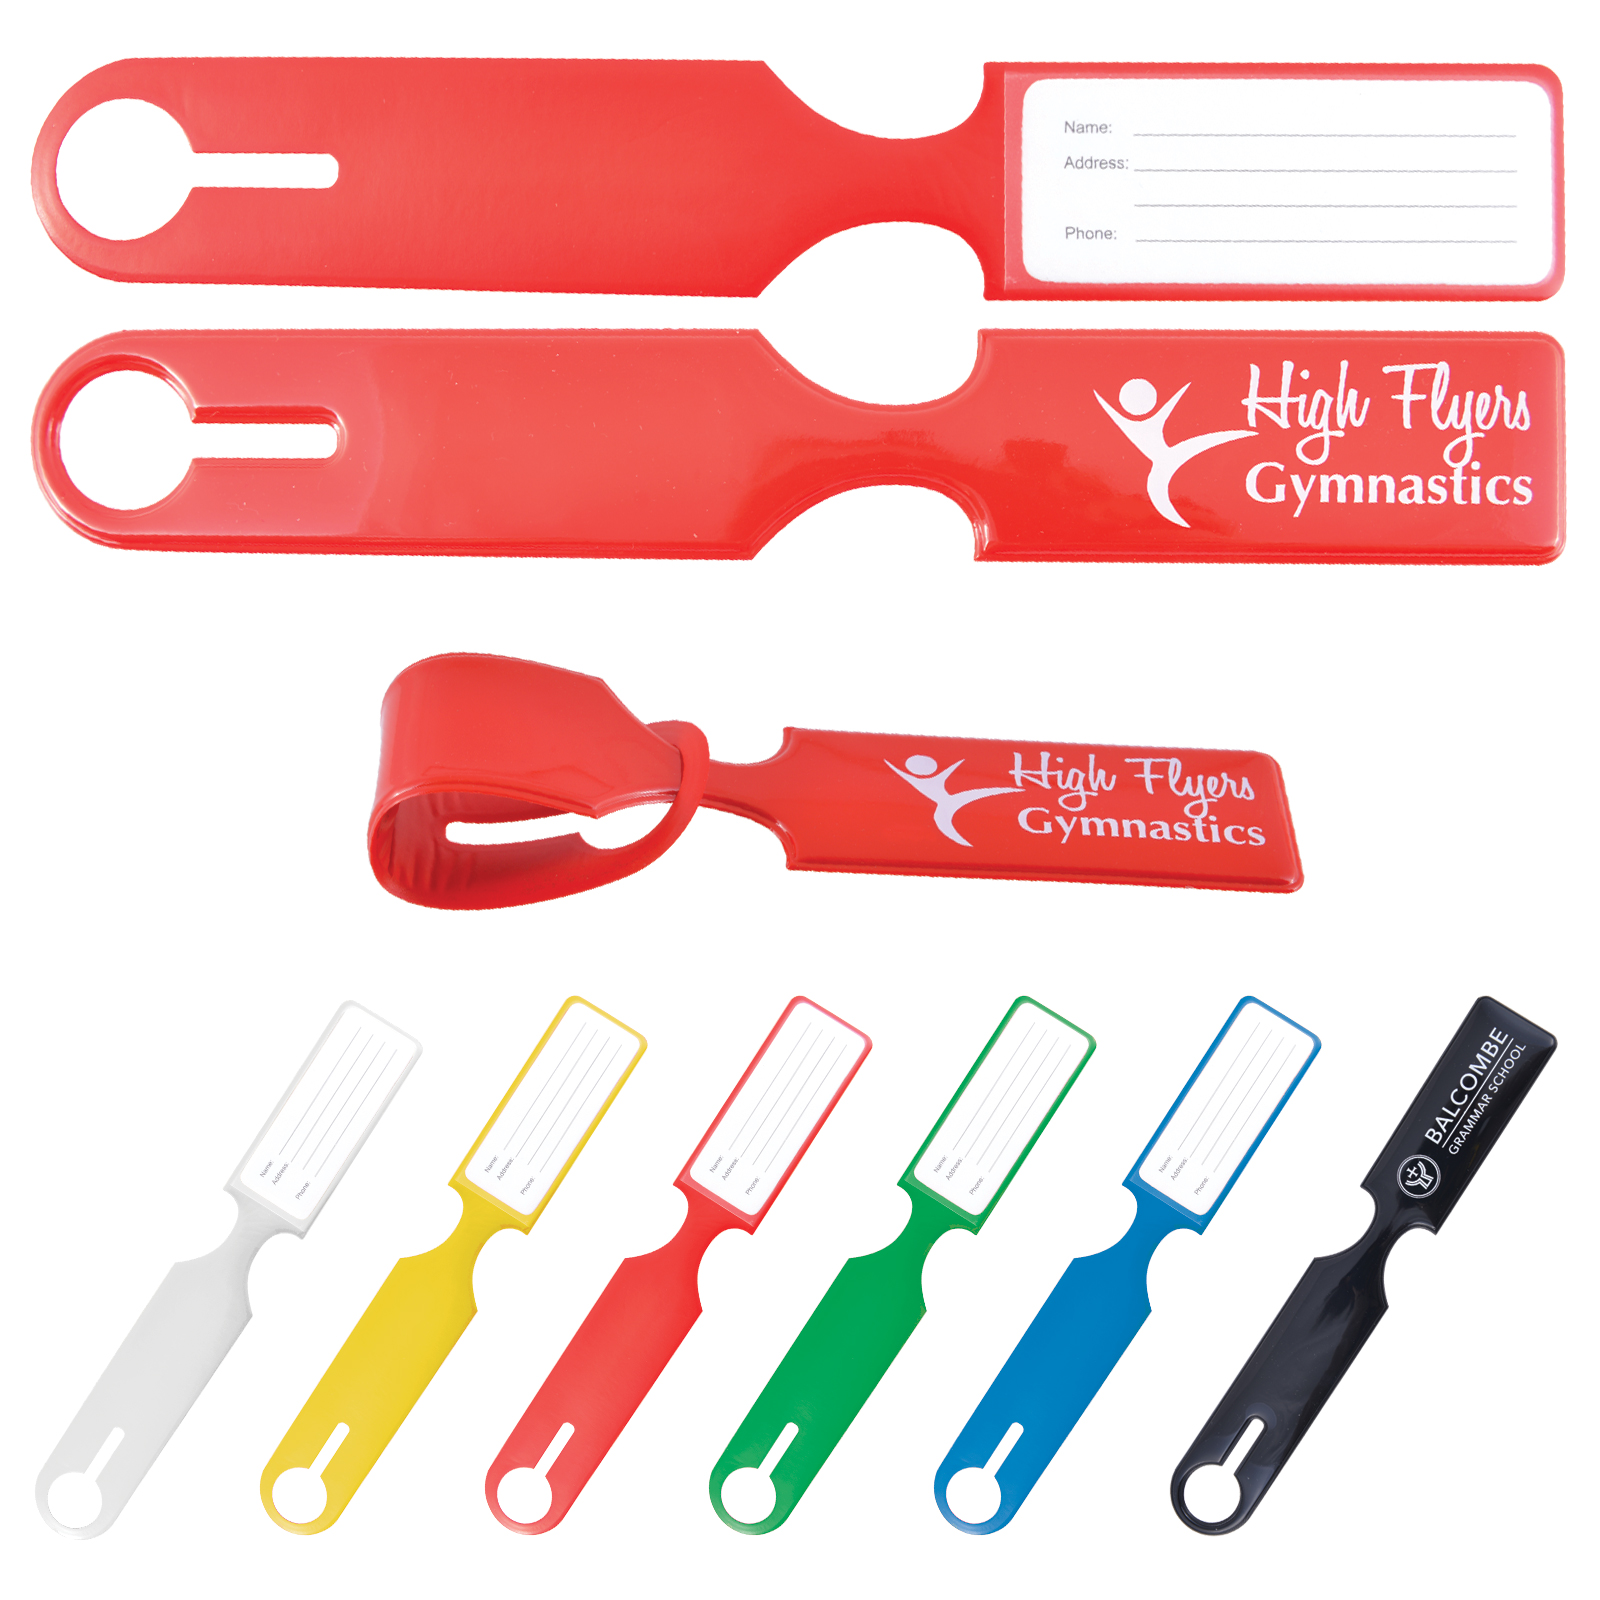 Shiny PVC Self Locking Luggage Tag - Includes debossed logo, From $1.03